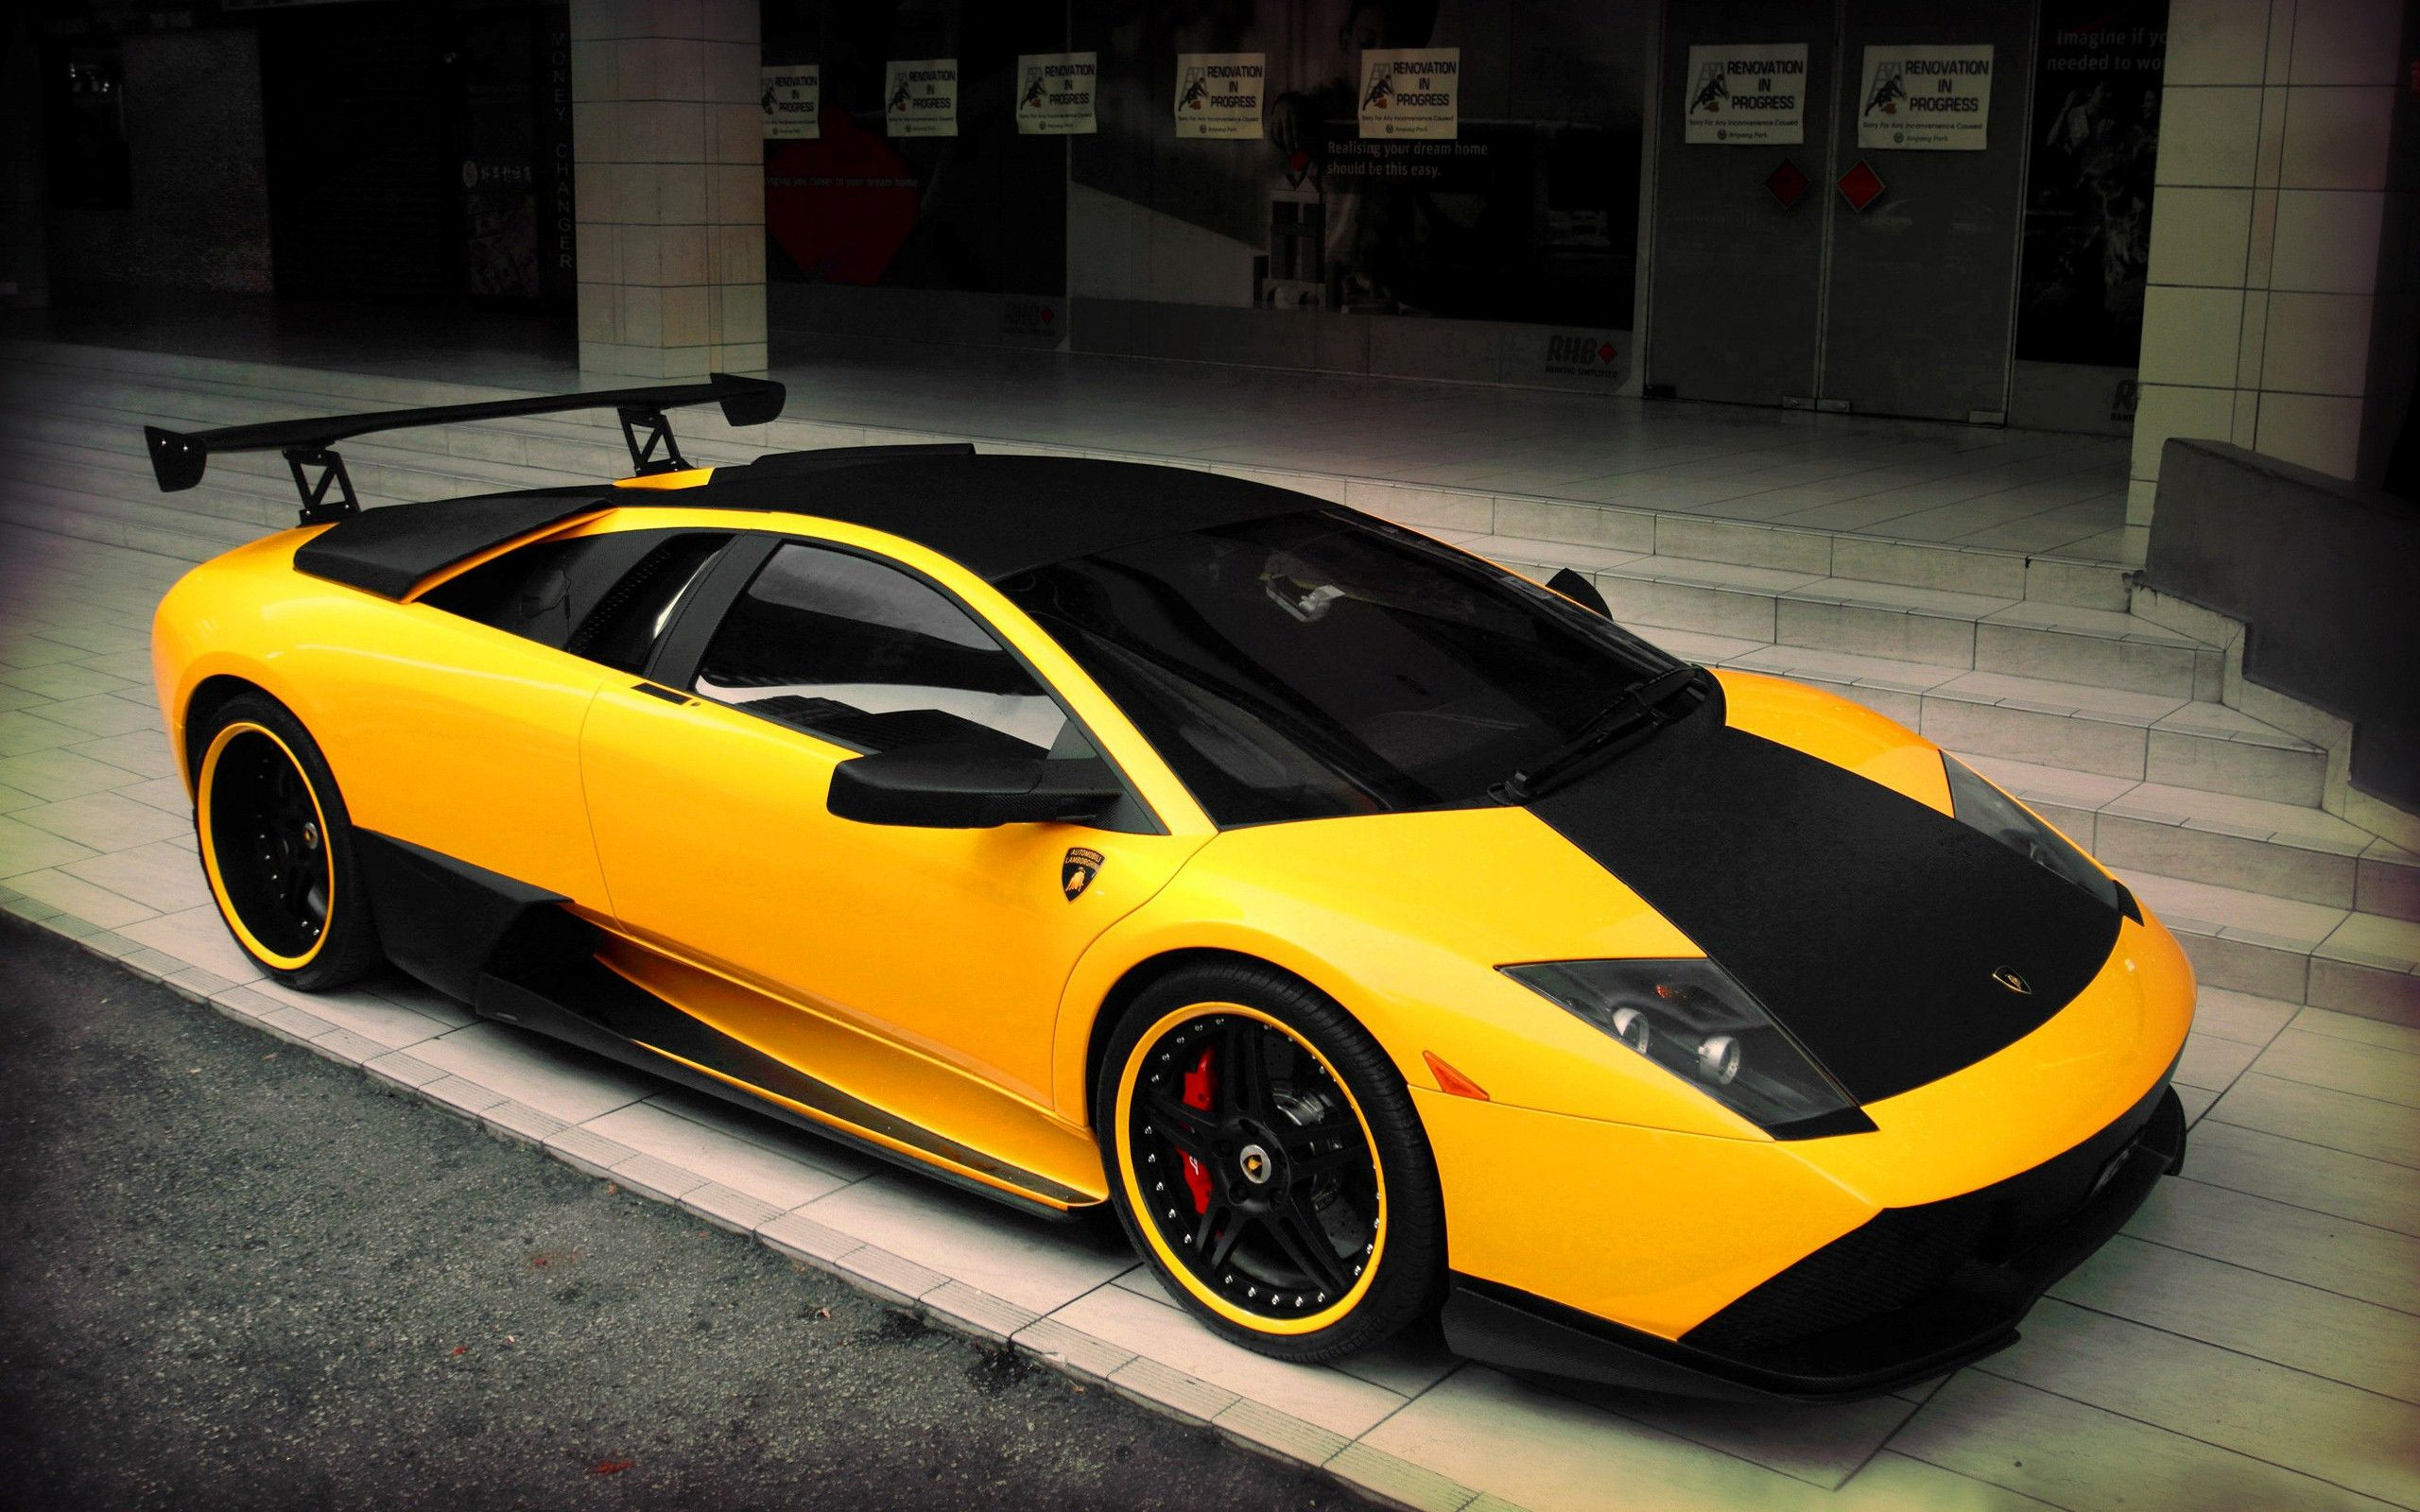 Image result for yellow and black cars | Yellow and Black Cars ...